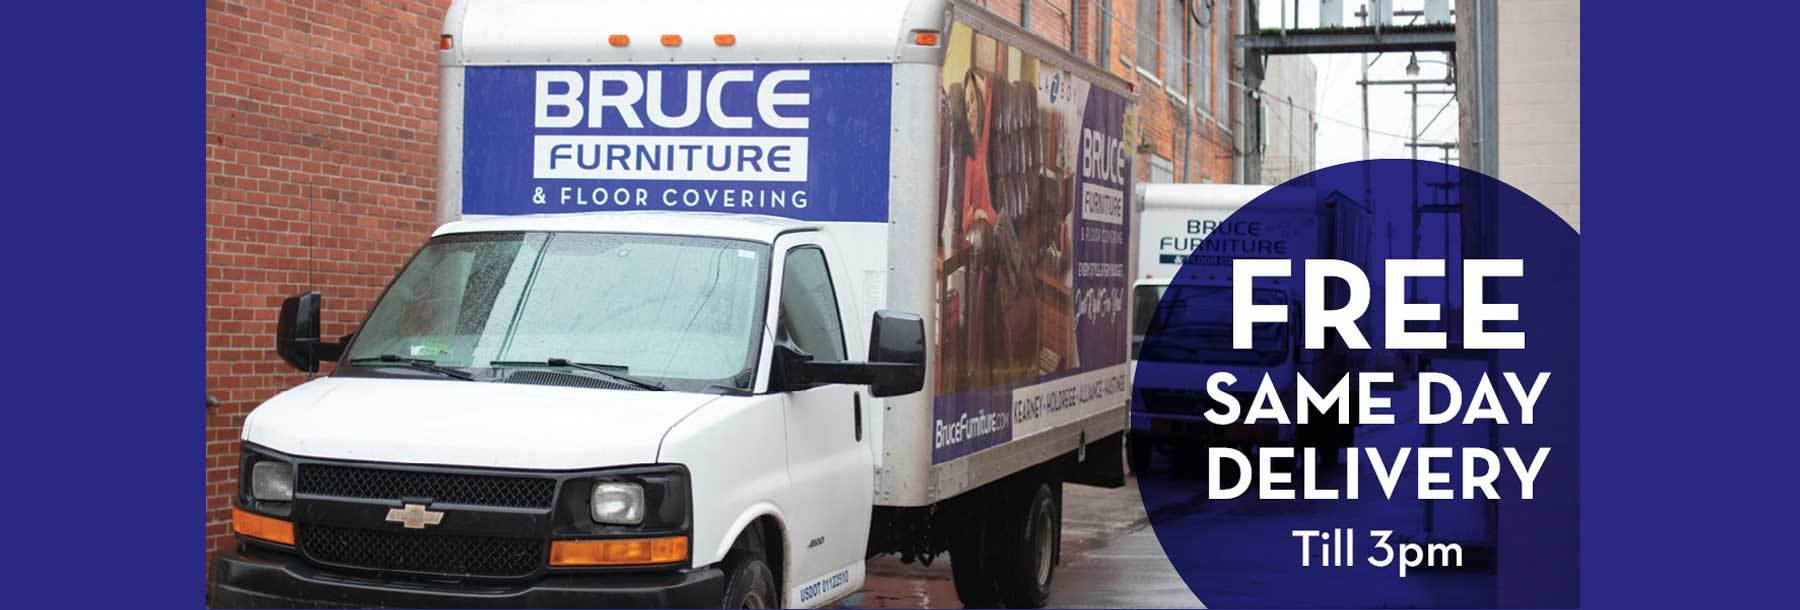 Home Page Bruce Furniture Flooring